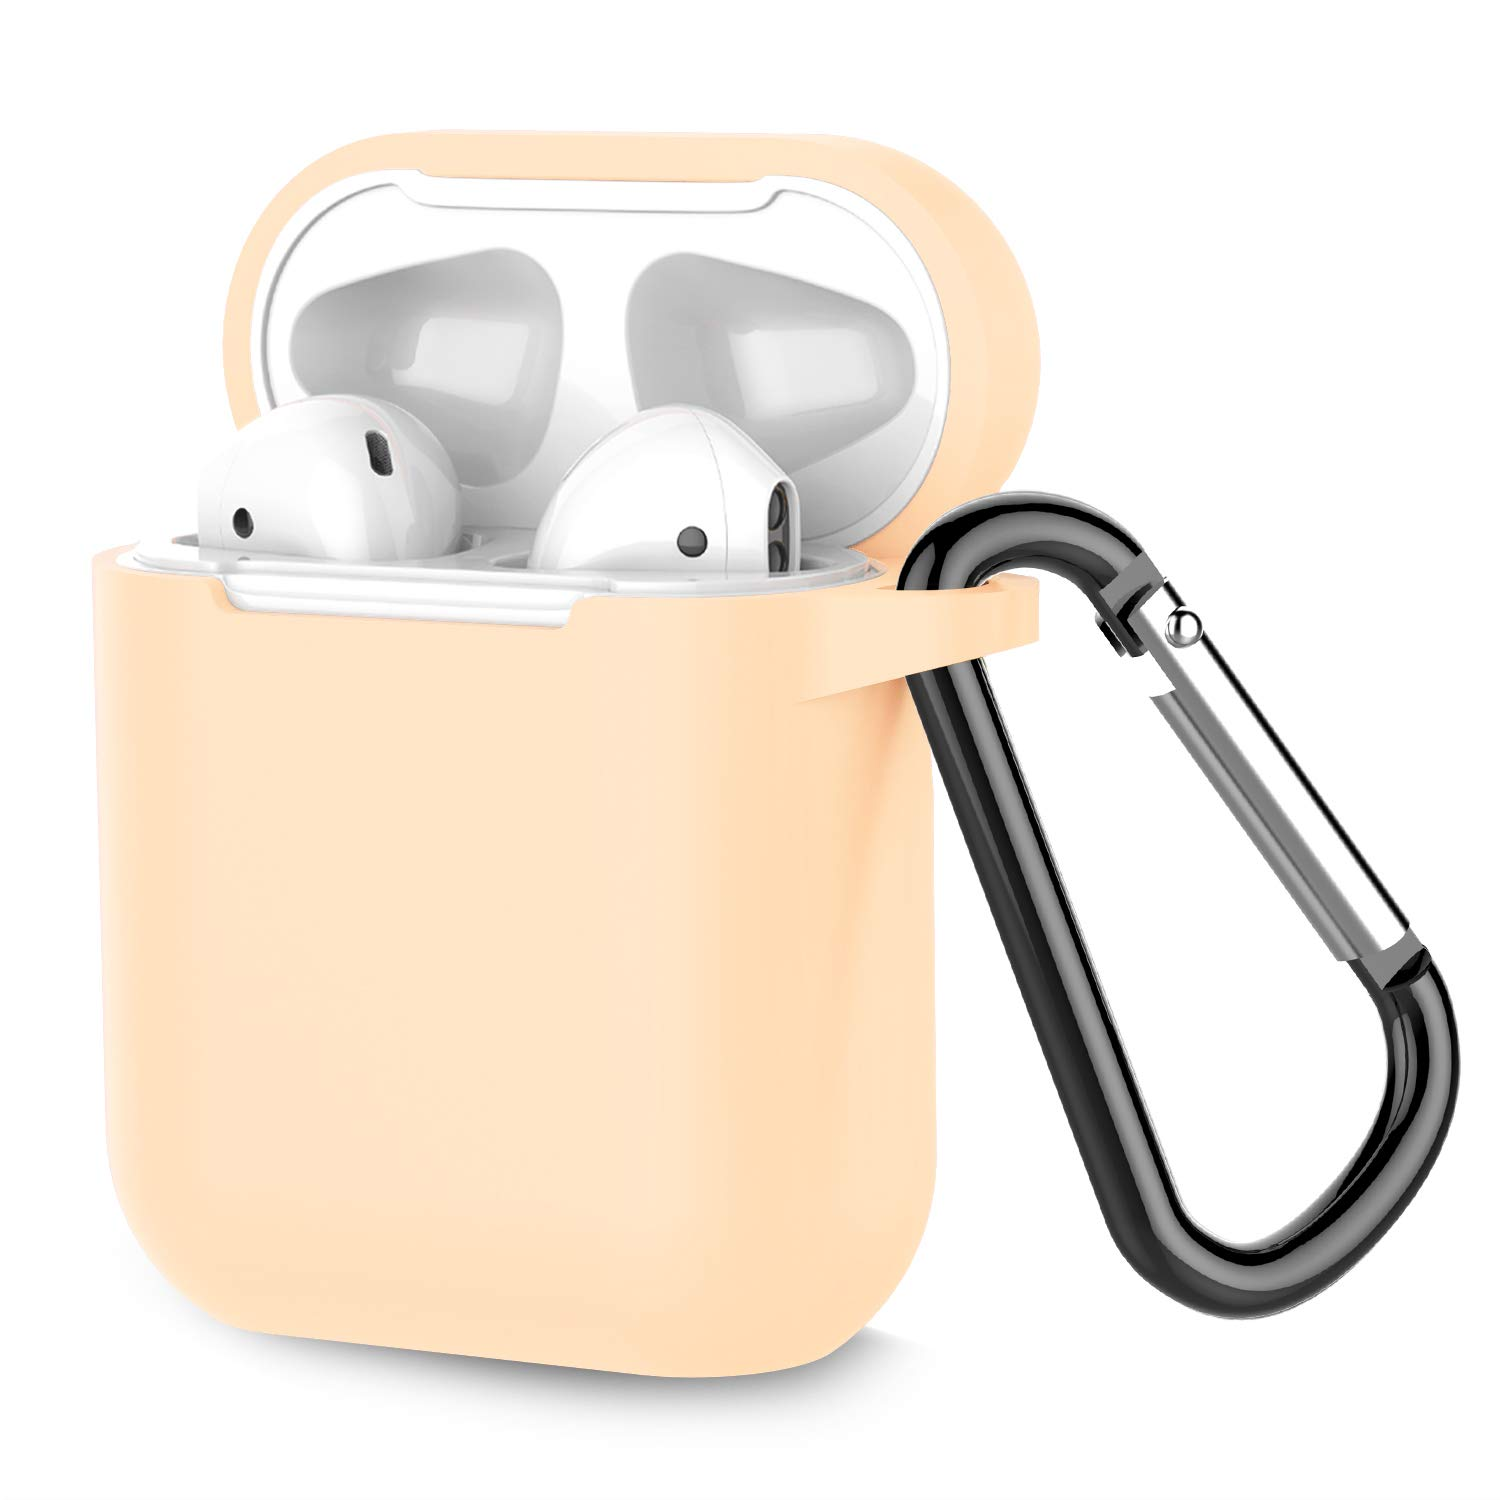 Airpods Case, Coffea AirPods Accessories Shockproof Case Cover Portable & Protective Silicone Skin Cover Case for Airpods 2 & 1 (Front LED Not Visible) - Apricot